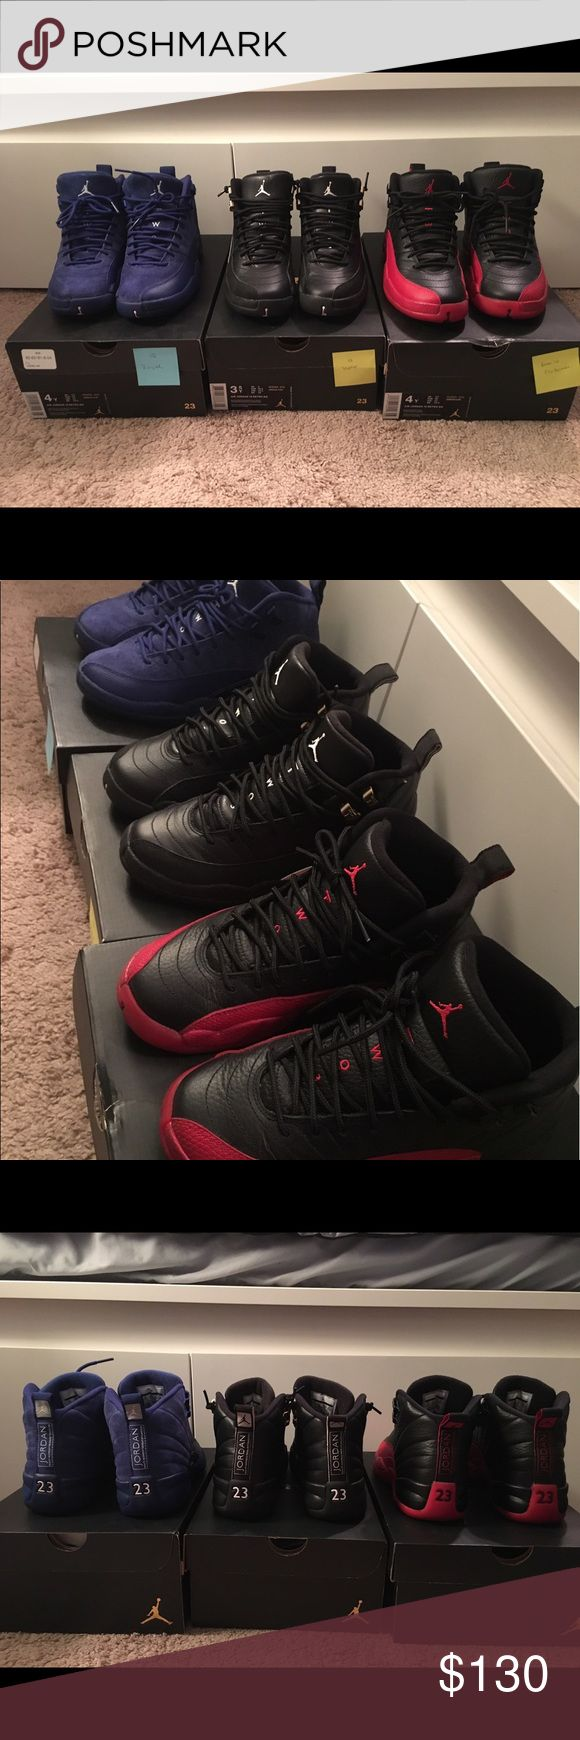 Jordan Retro 12 Adult worn. Retro 12 Royal (size 4Y), Retro 12 Masters (size 3.5Y), Retro 12 Flu Games (size 4Y). All only worn a couple of times. More detailed pictures available upon request. Listing price is per pair, if you would like to purchase multiple, please let me know and I can create a listing for you. Thank you! Jordan Shoes Sneakers